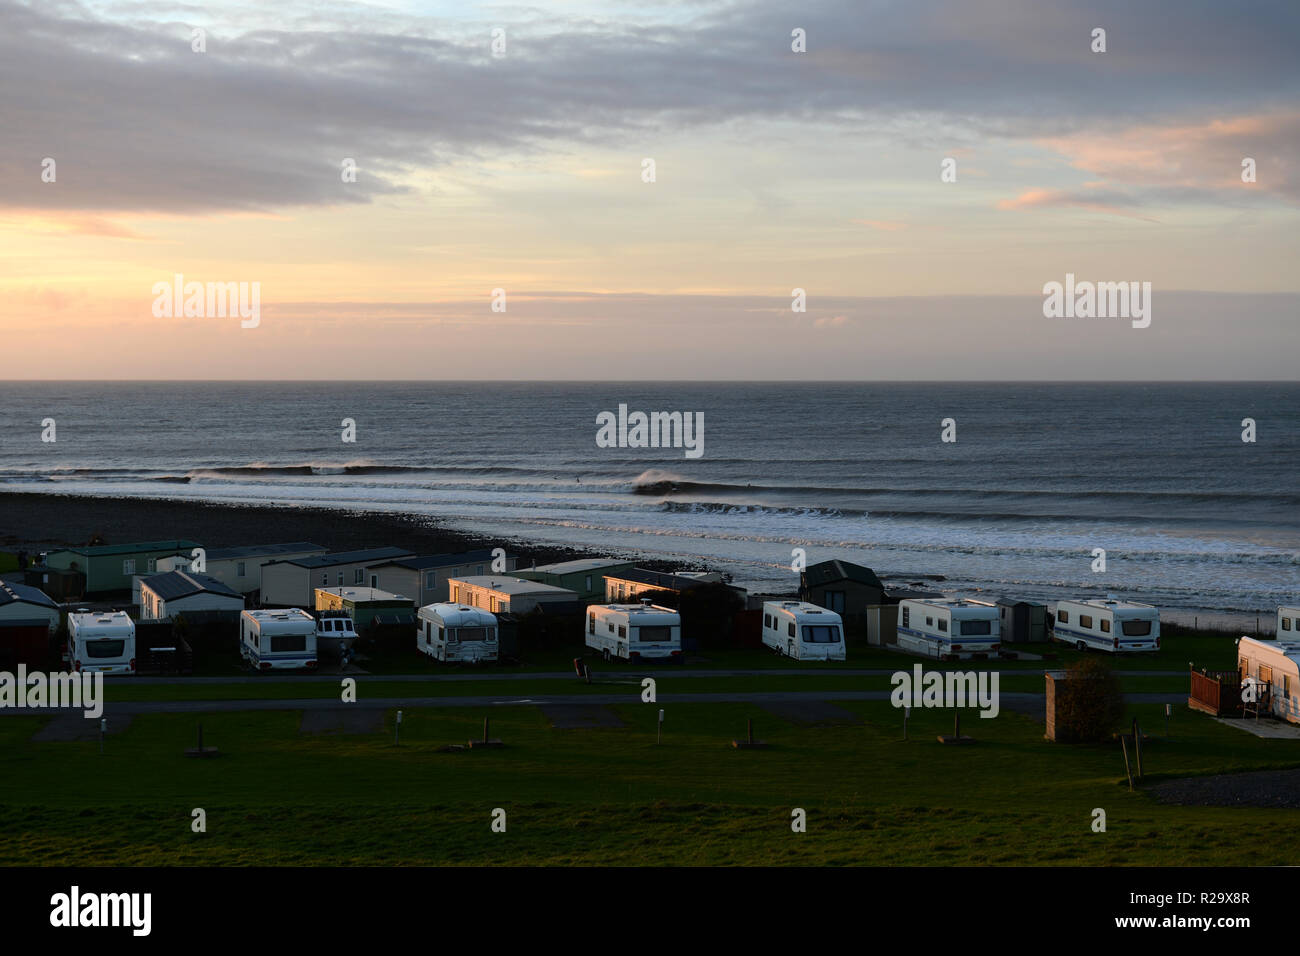 Llanrhystud beach at sunset light looking over the river mouth break and pebble shoreline with several caravans in foreground - Stock Image